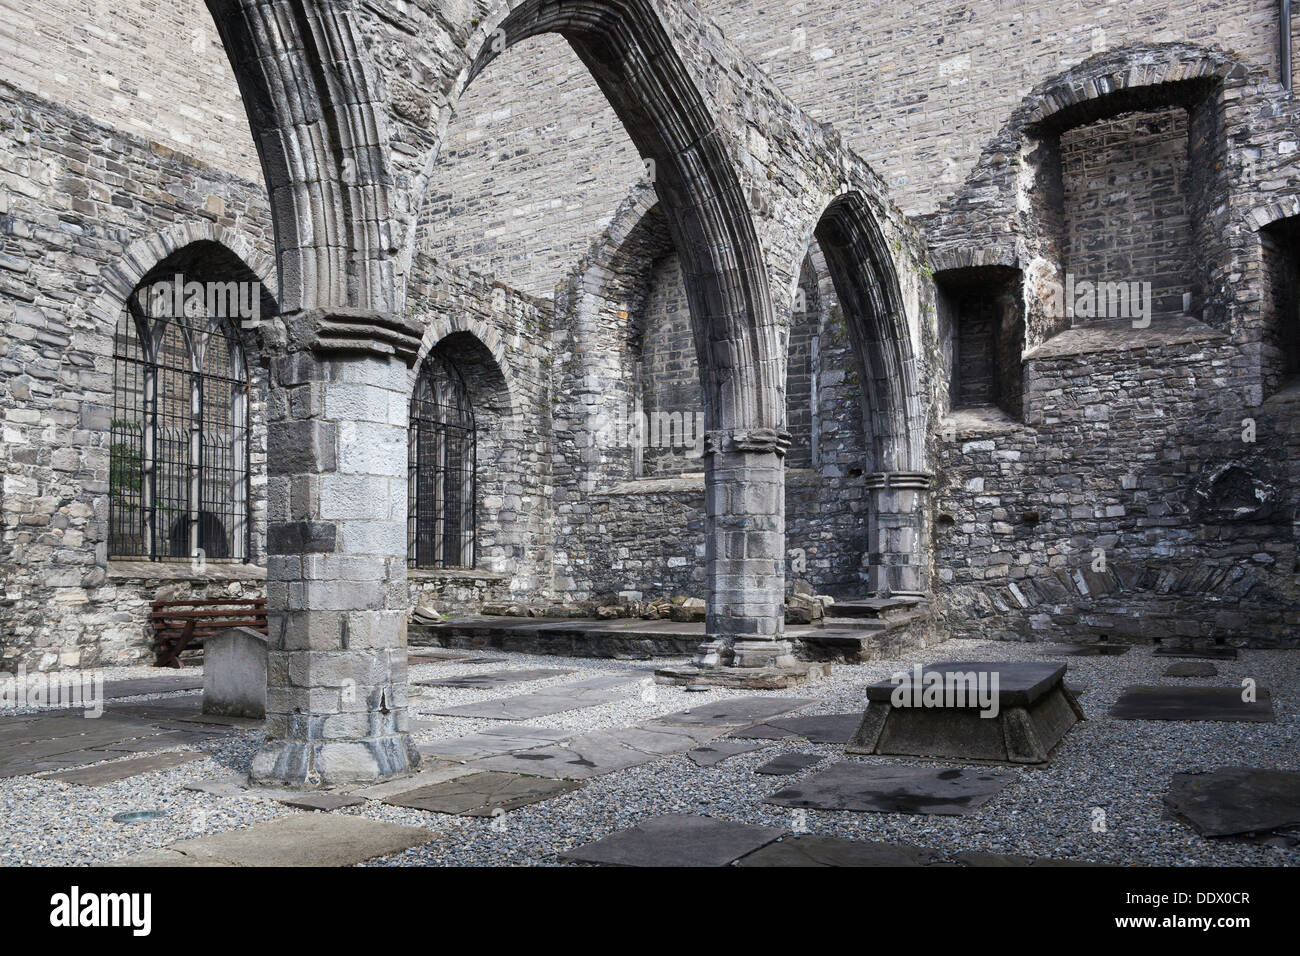 Detail of cloister of St. Auden's church, monochrome, showing Romanesque columns and arches, with tombstones set into ground, Du - Stock Image